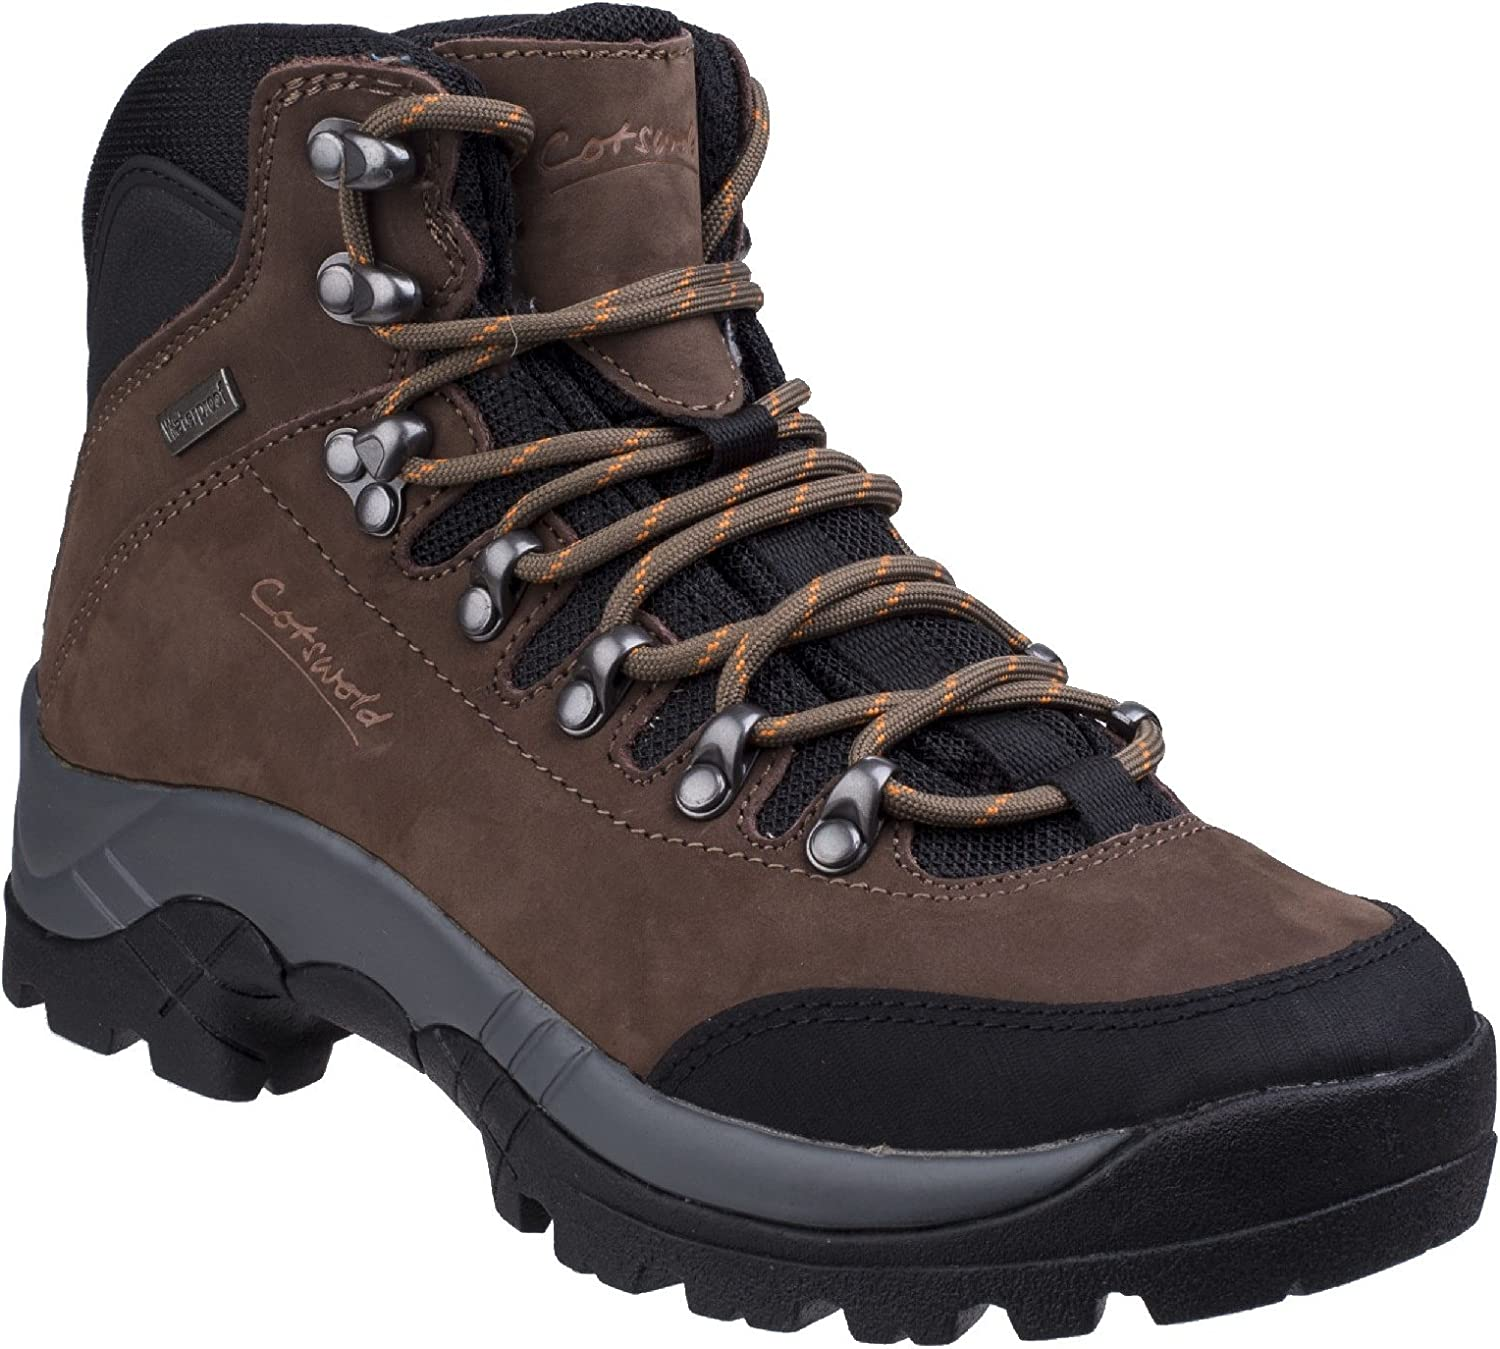 Cotswold Womens Ladies Westonbirt Waterproof Hiking Boots